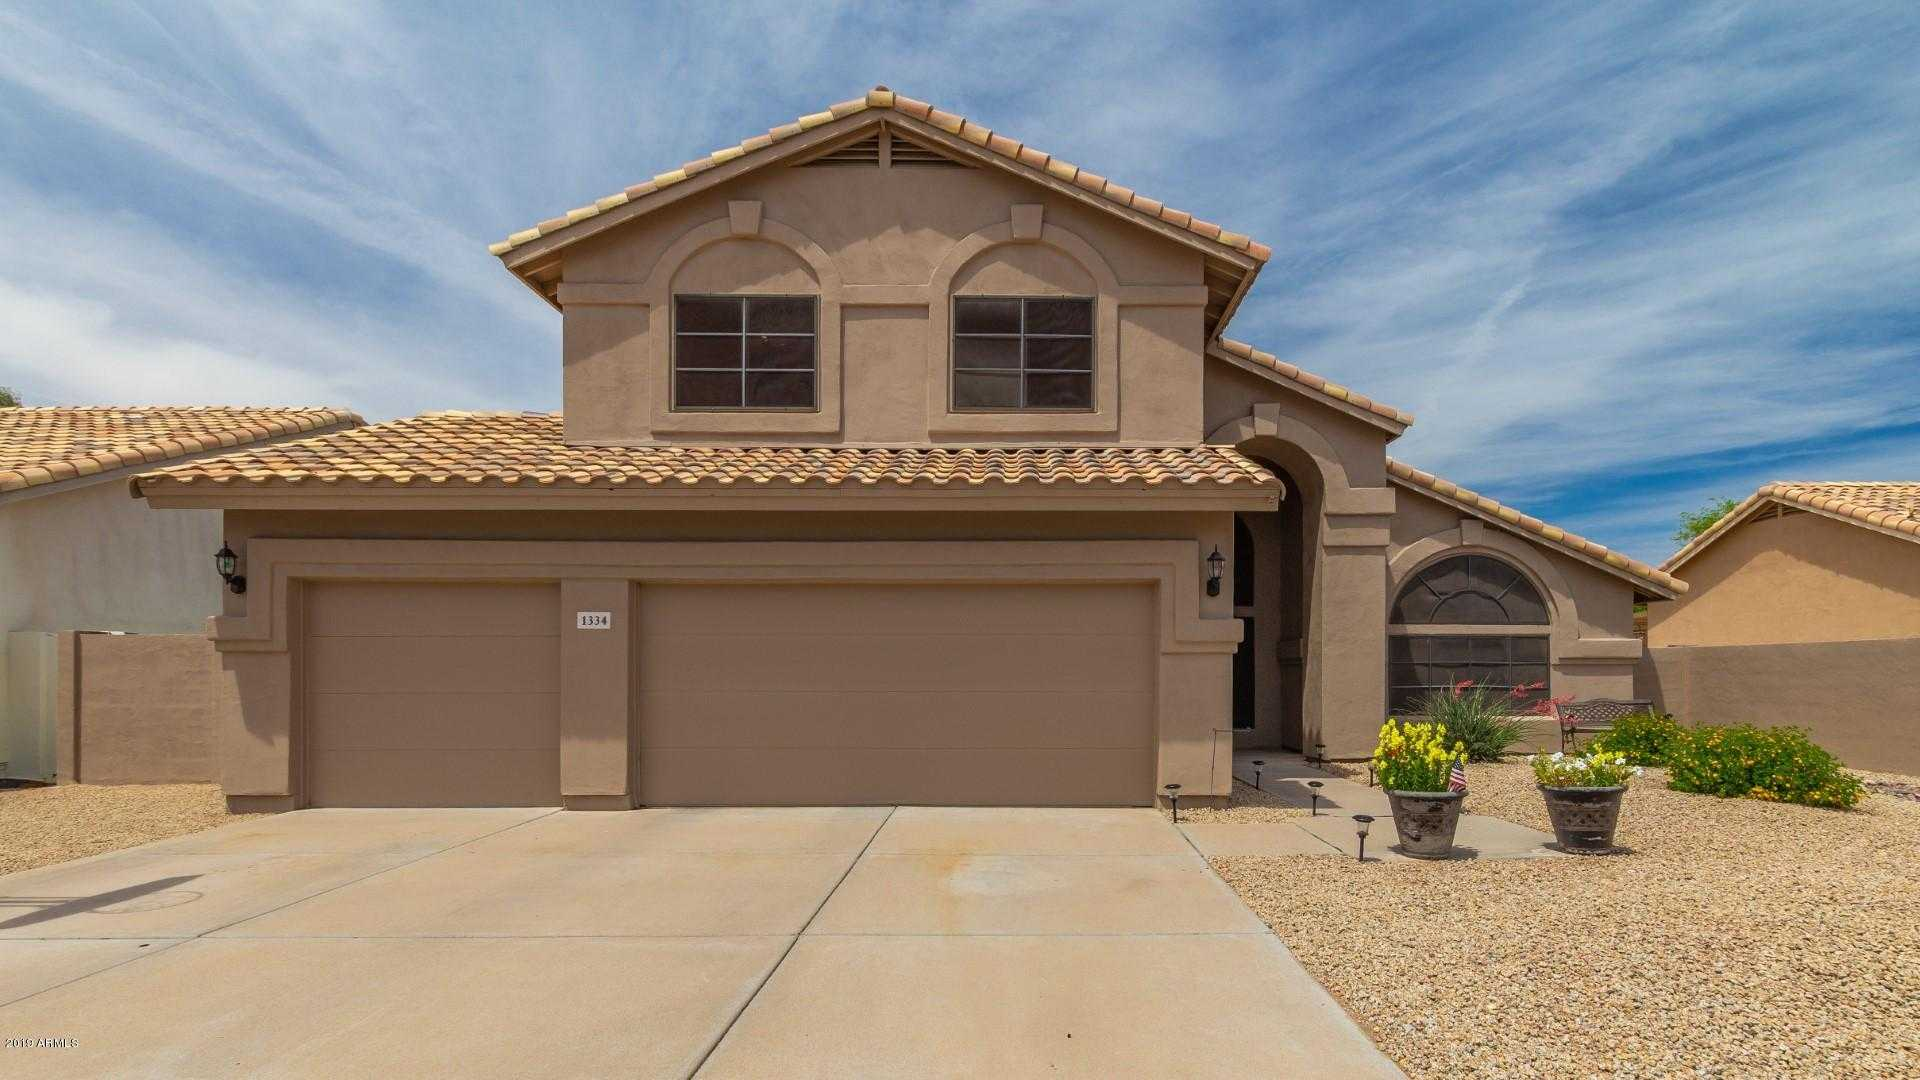 $400,000 - 4Br/3Ba - Home for Sale in Parkside Meadows, Chandler